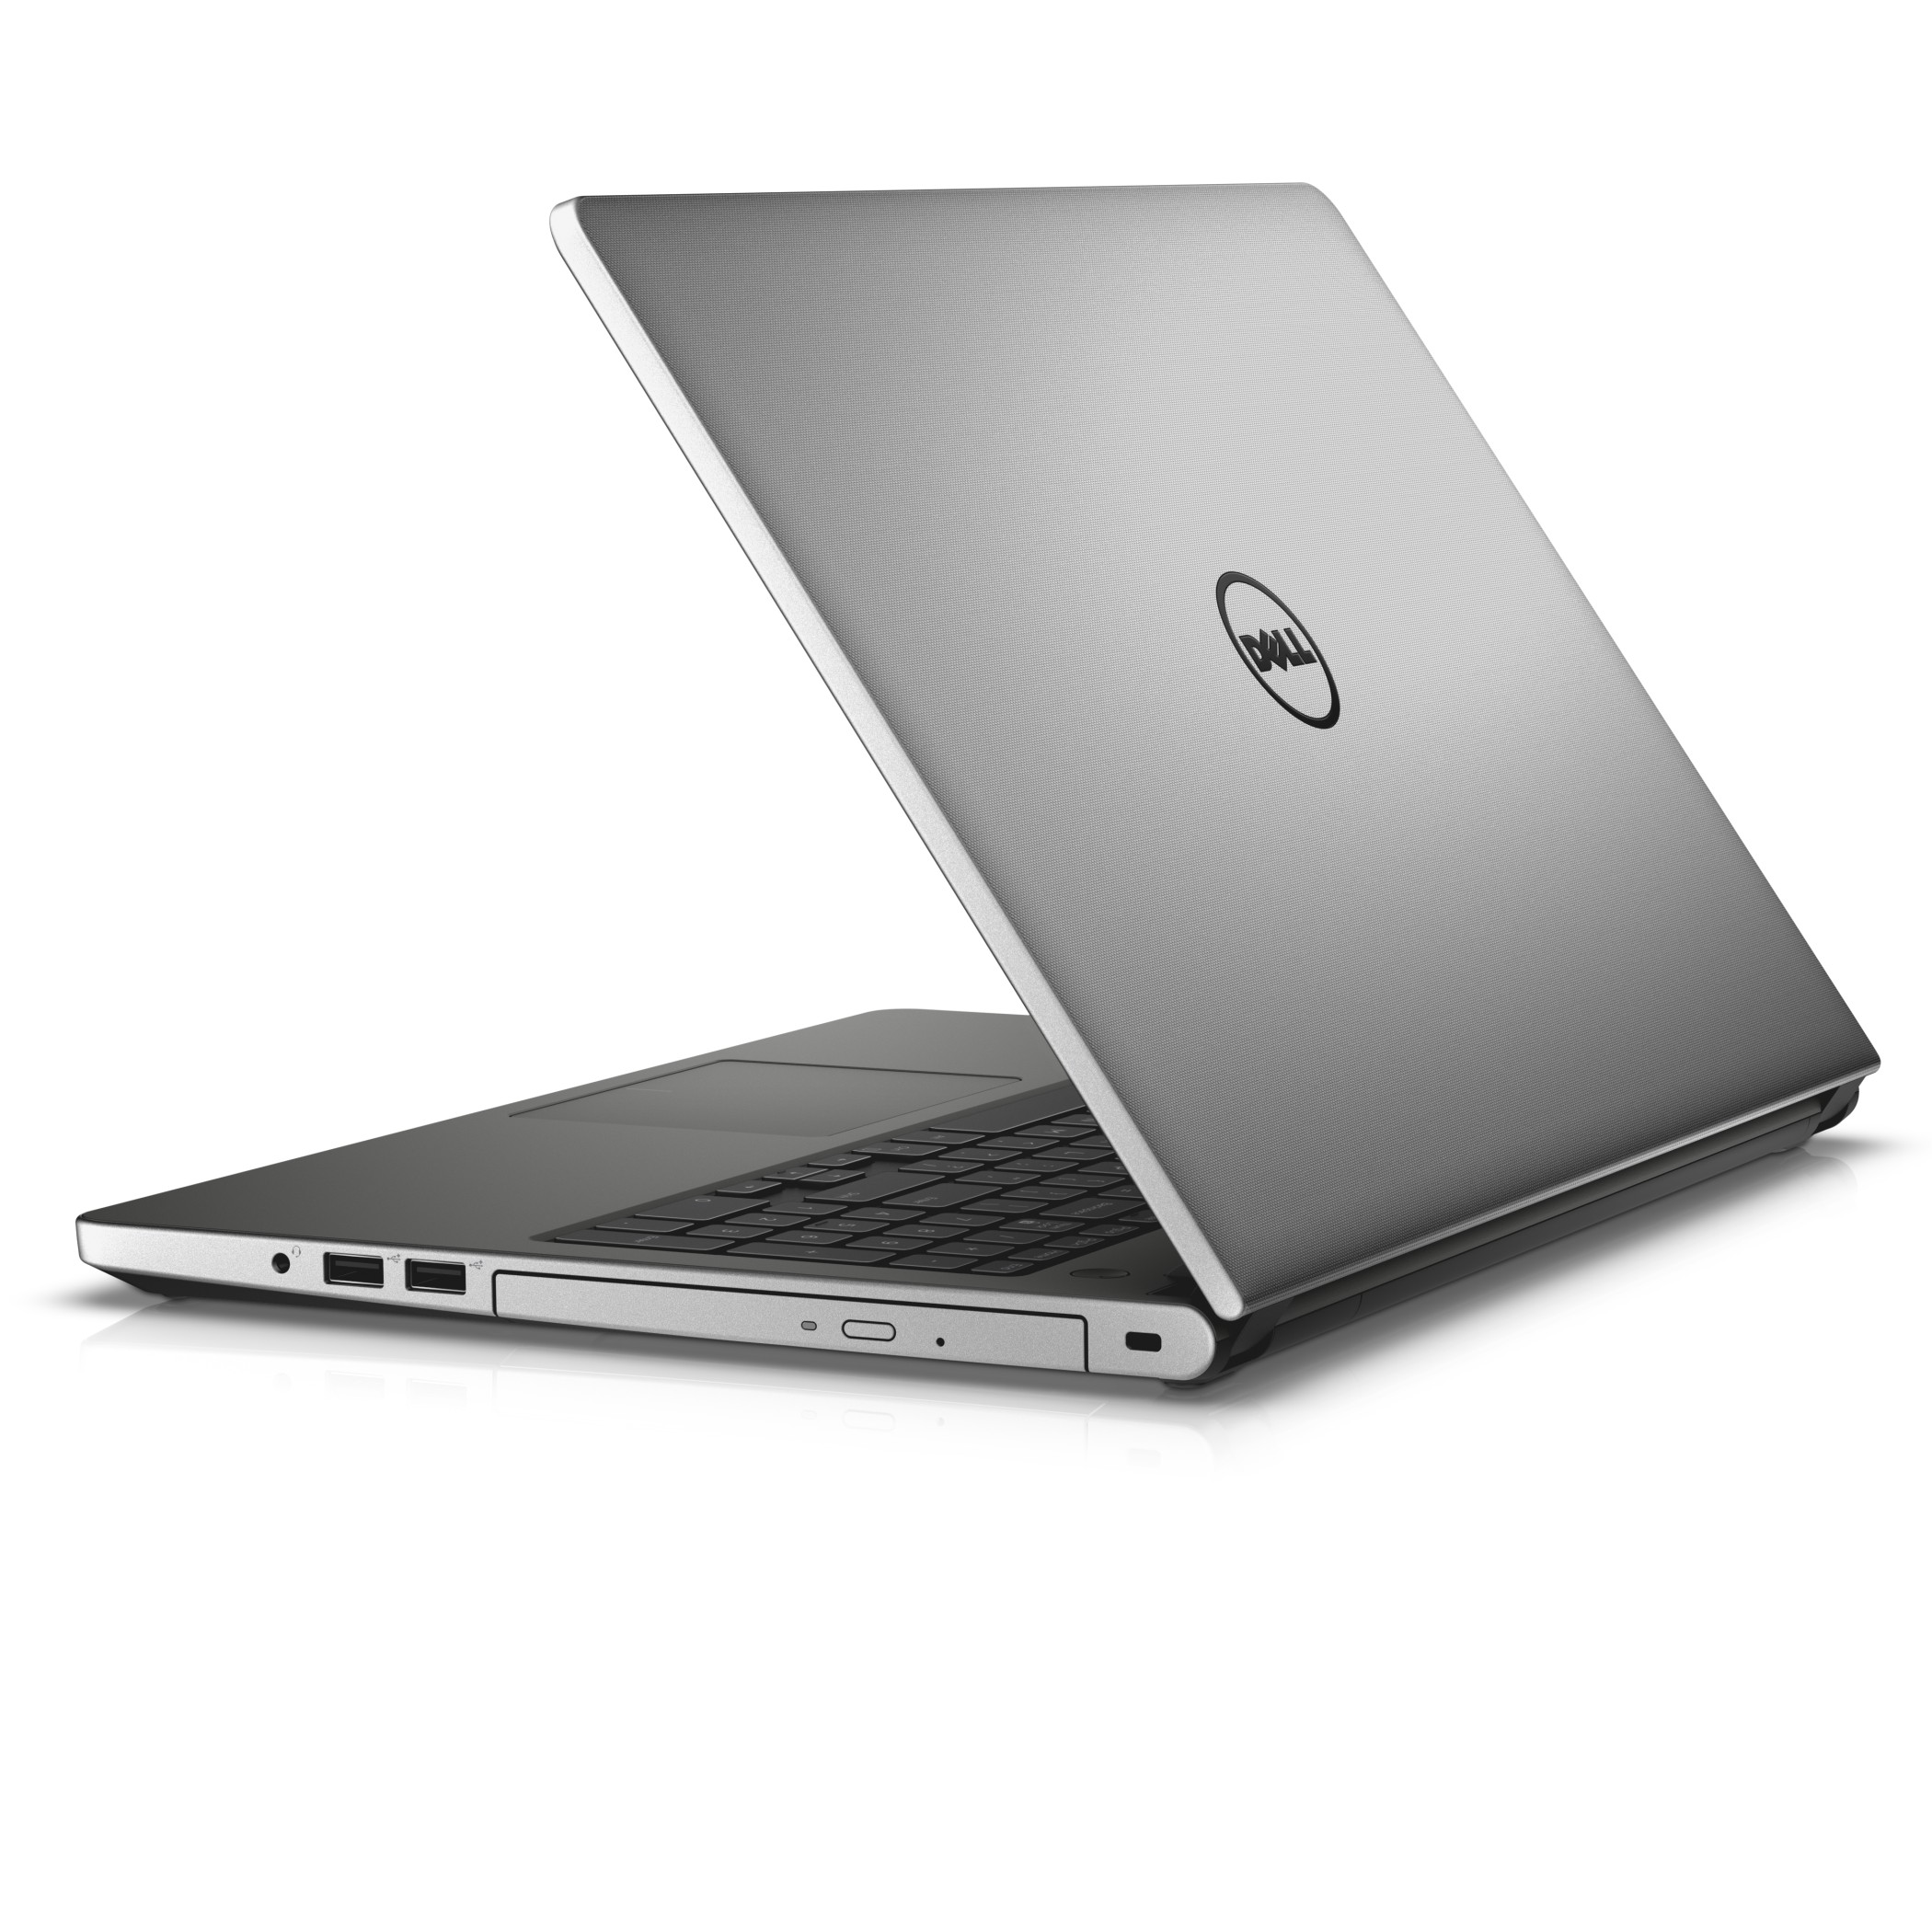 "Dell Inspiron 5559 15"" i5-6200U/4GB/500GB/M335-2G/HDMI/RJ45/WIFI/BT/MC"